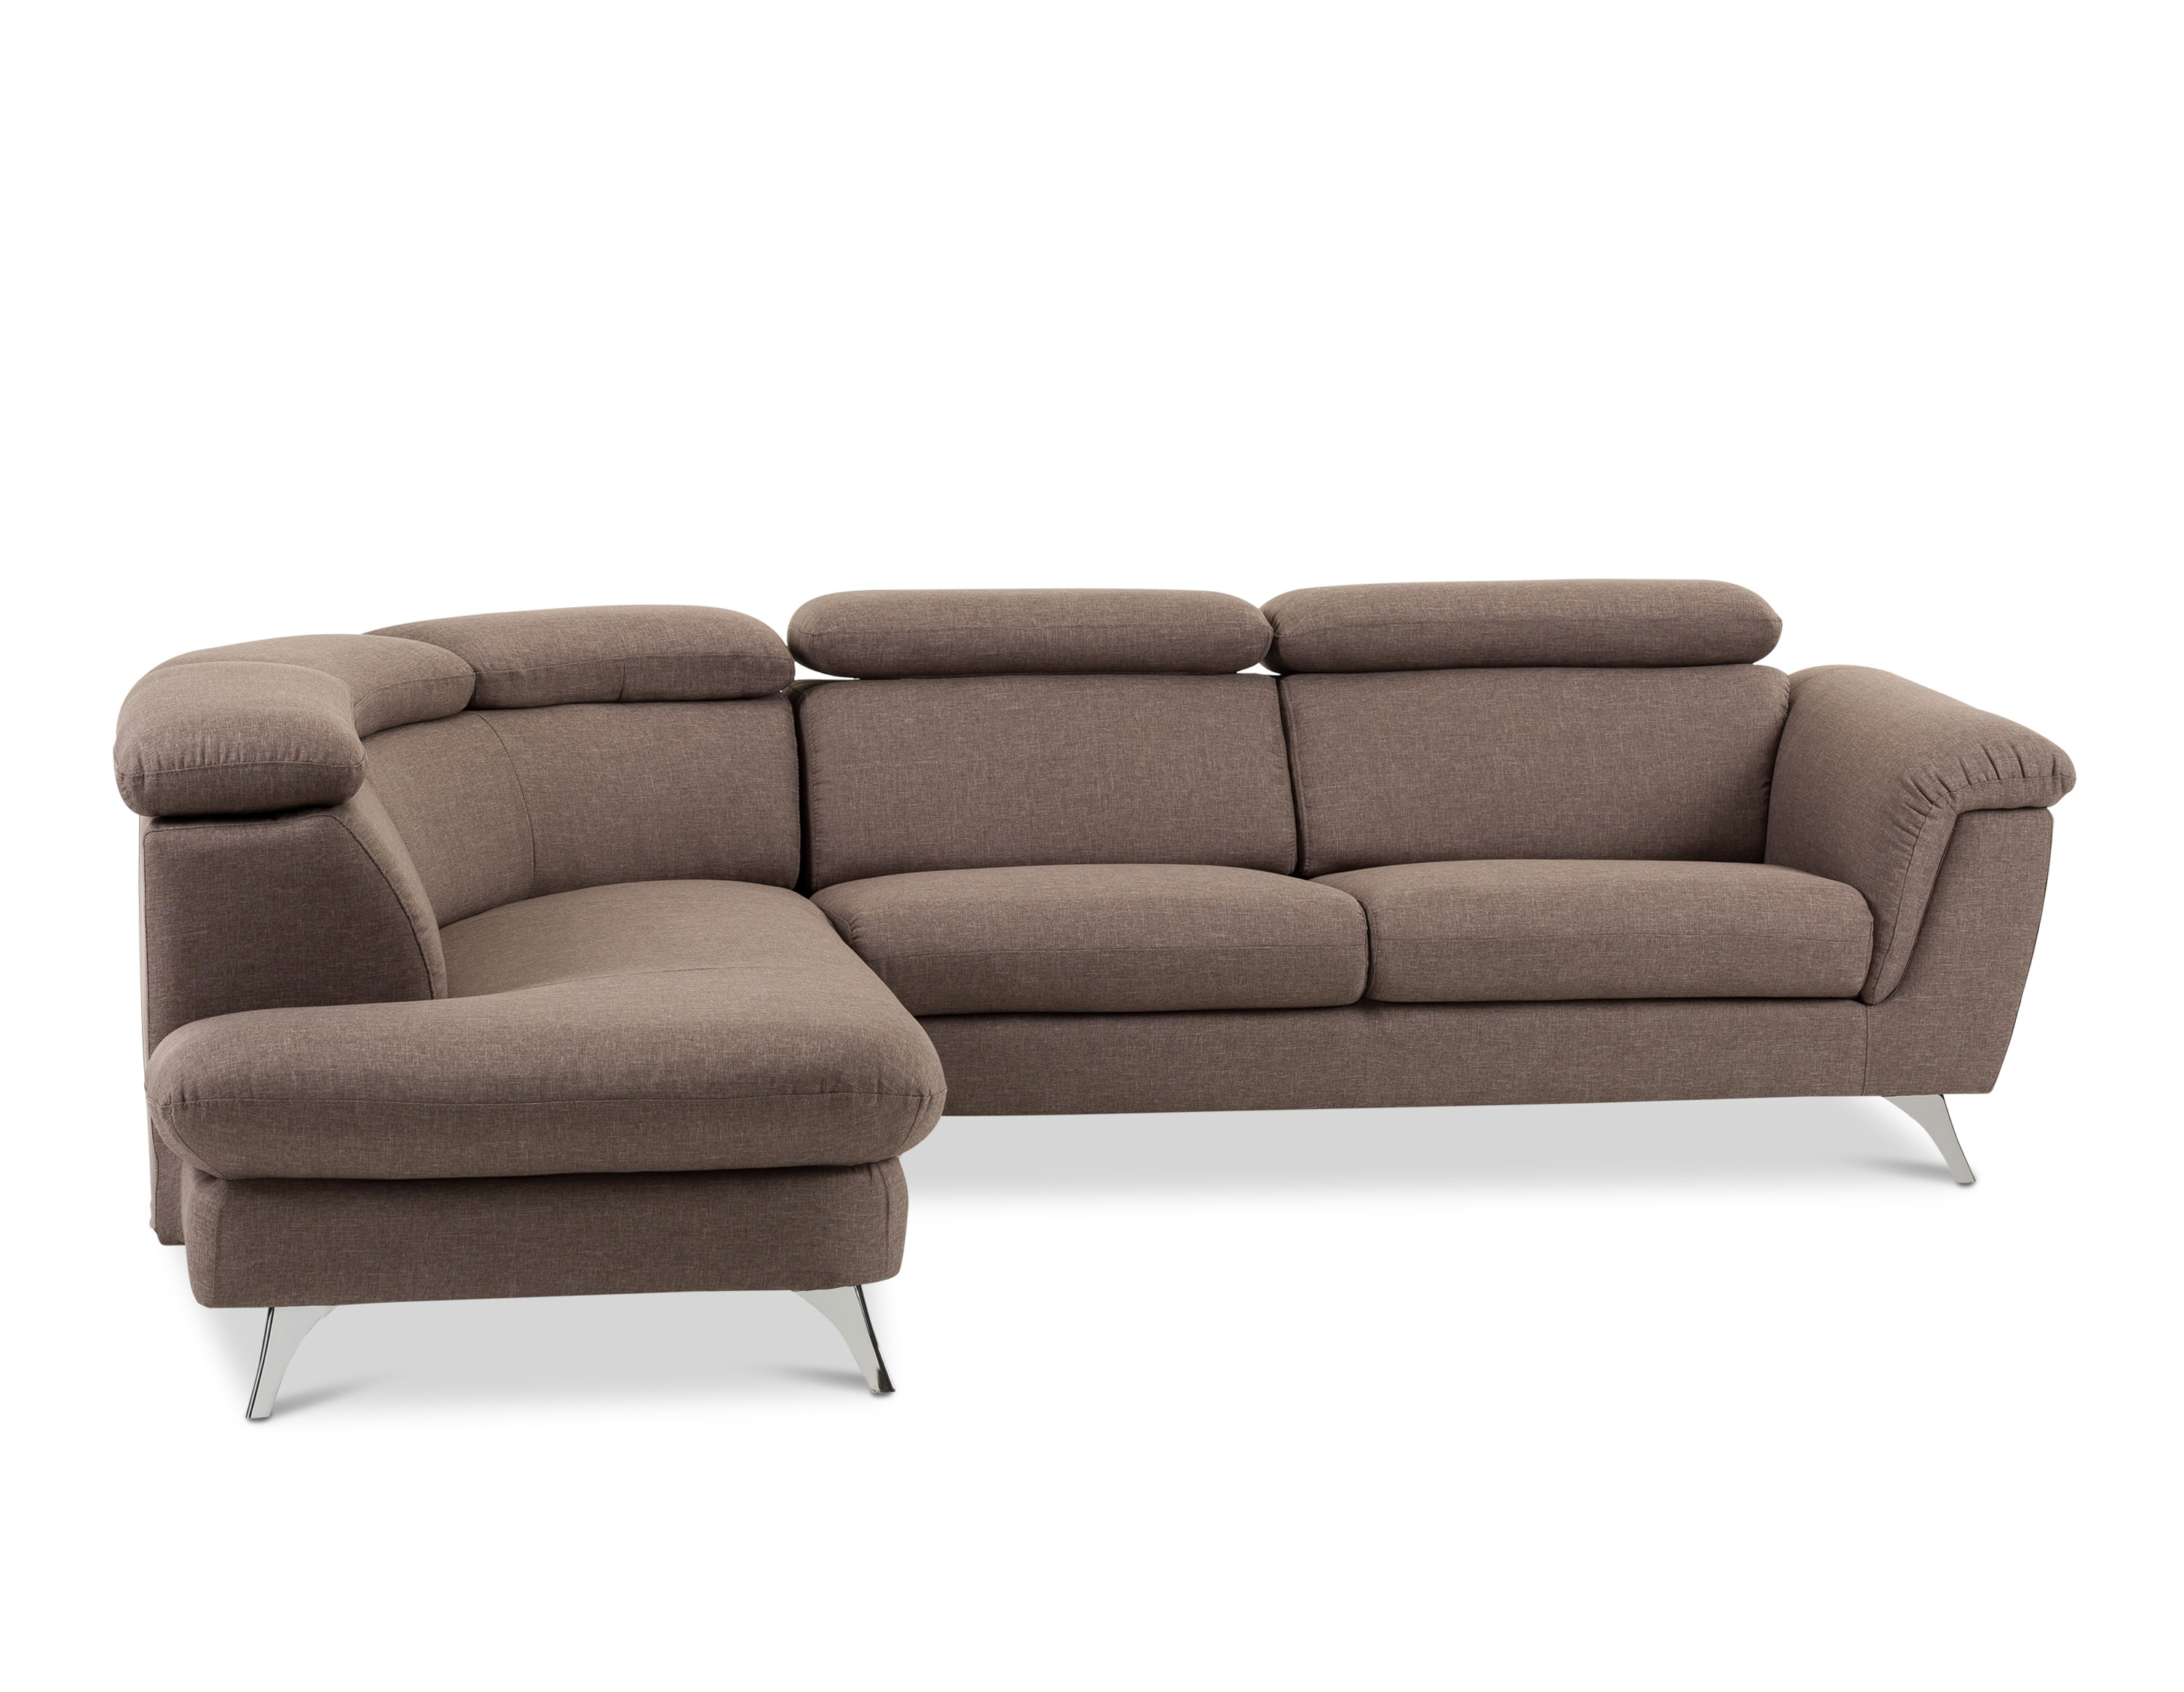 Cheap Sectional Couches | Cheap Living Room Sets Under 500 | Cheap Loveseats